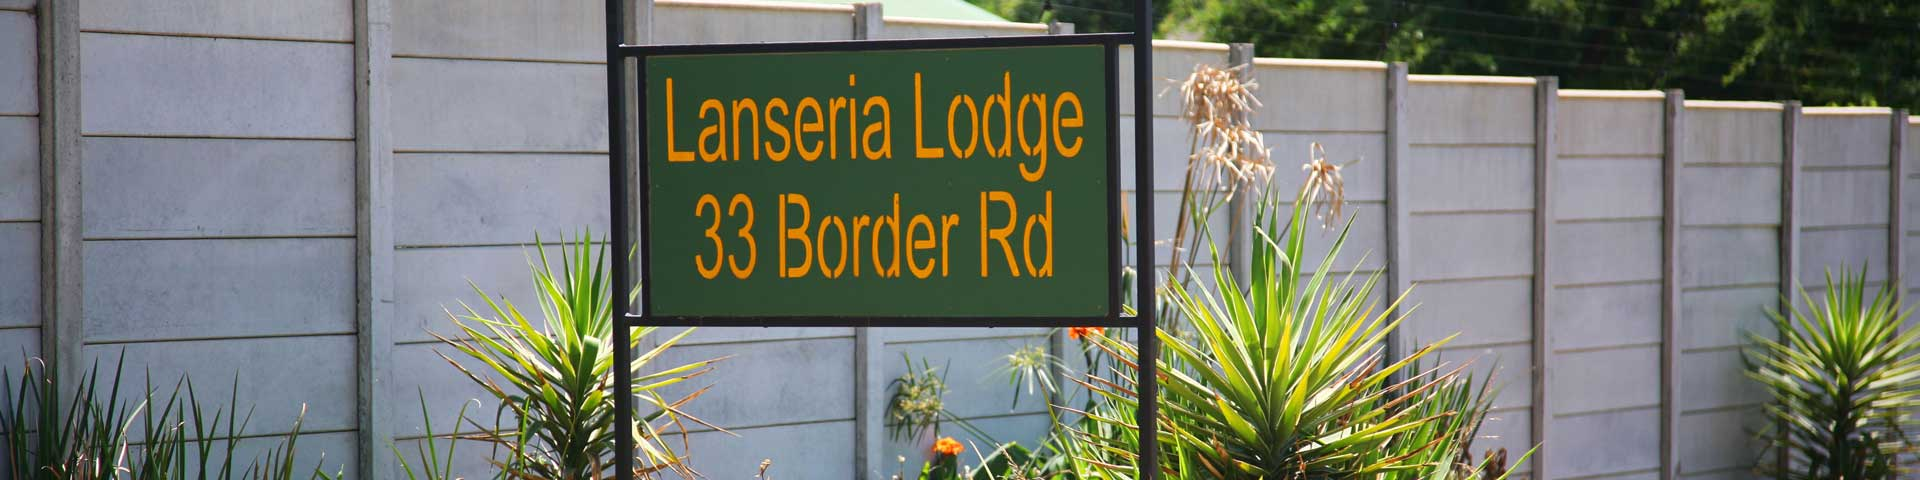 Lanseria Lodge 33 Border Rd